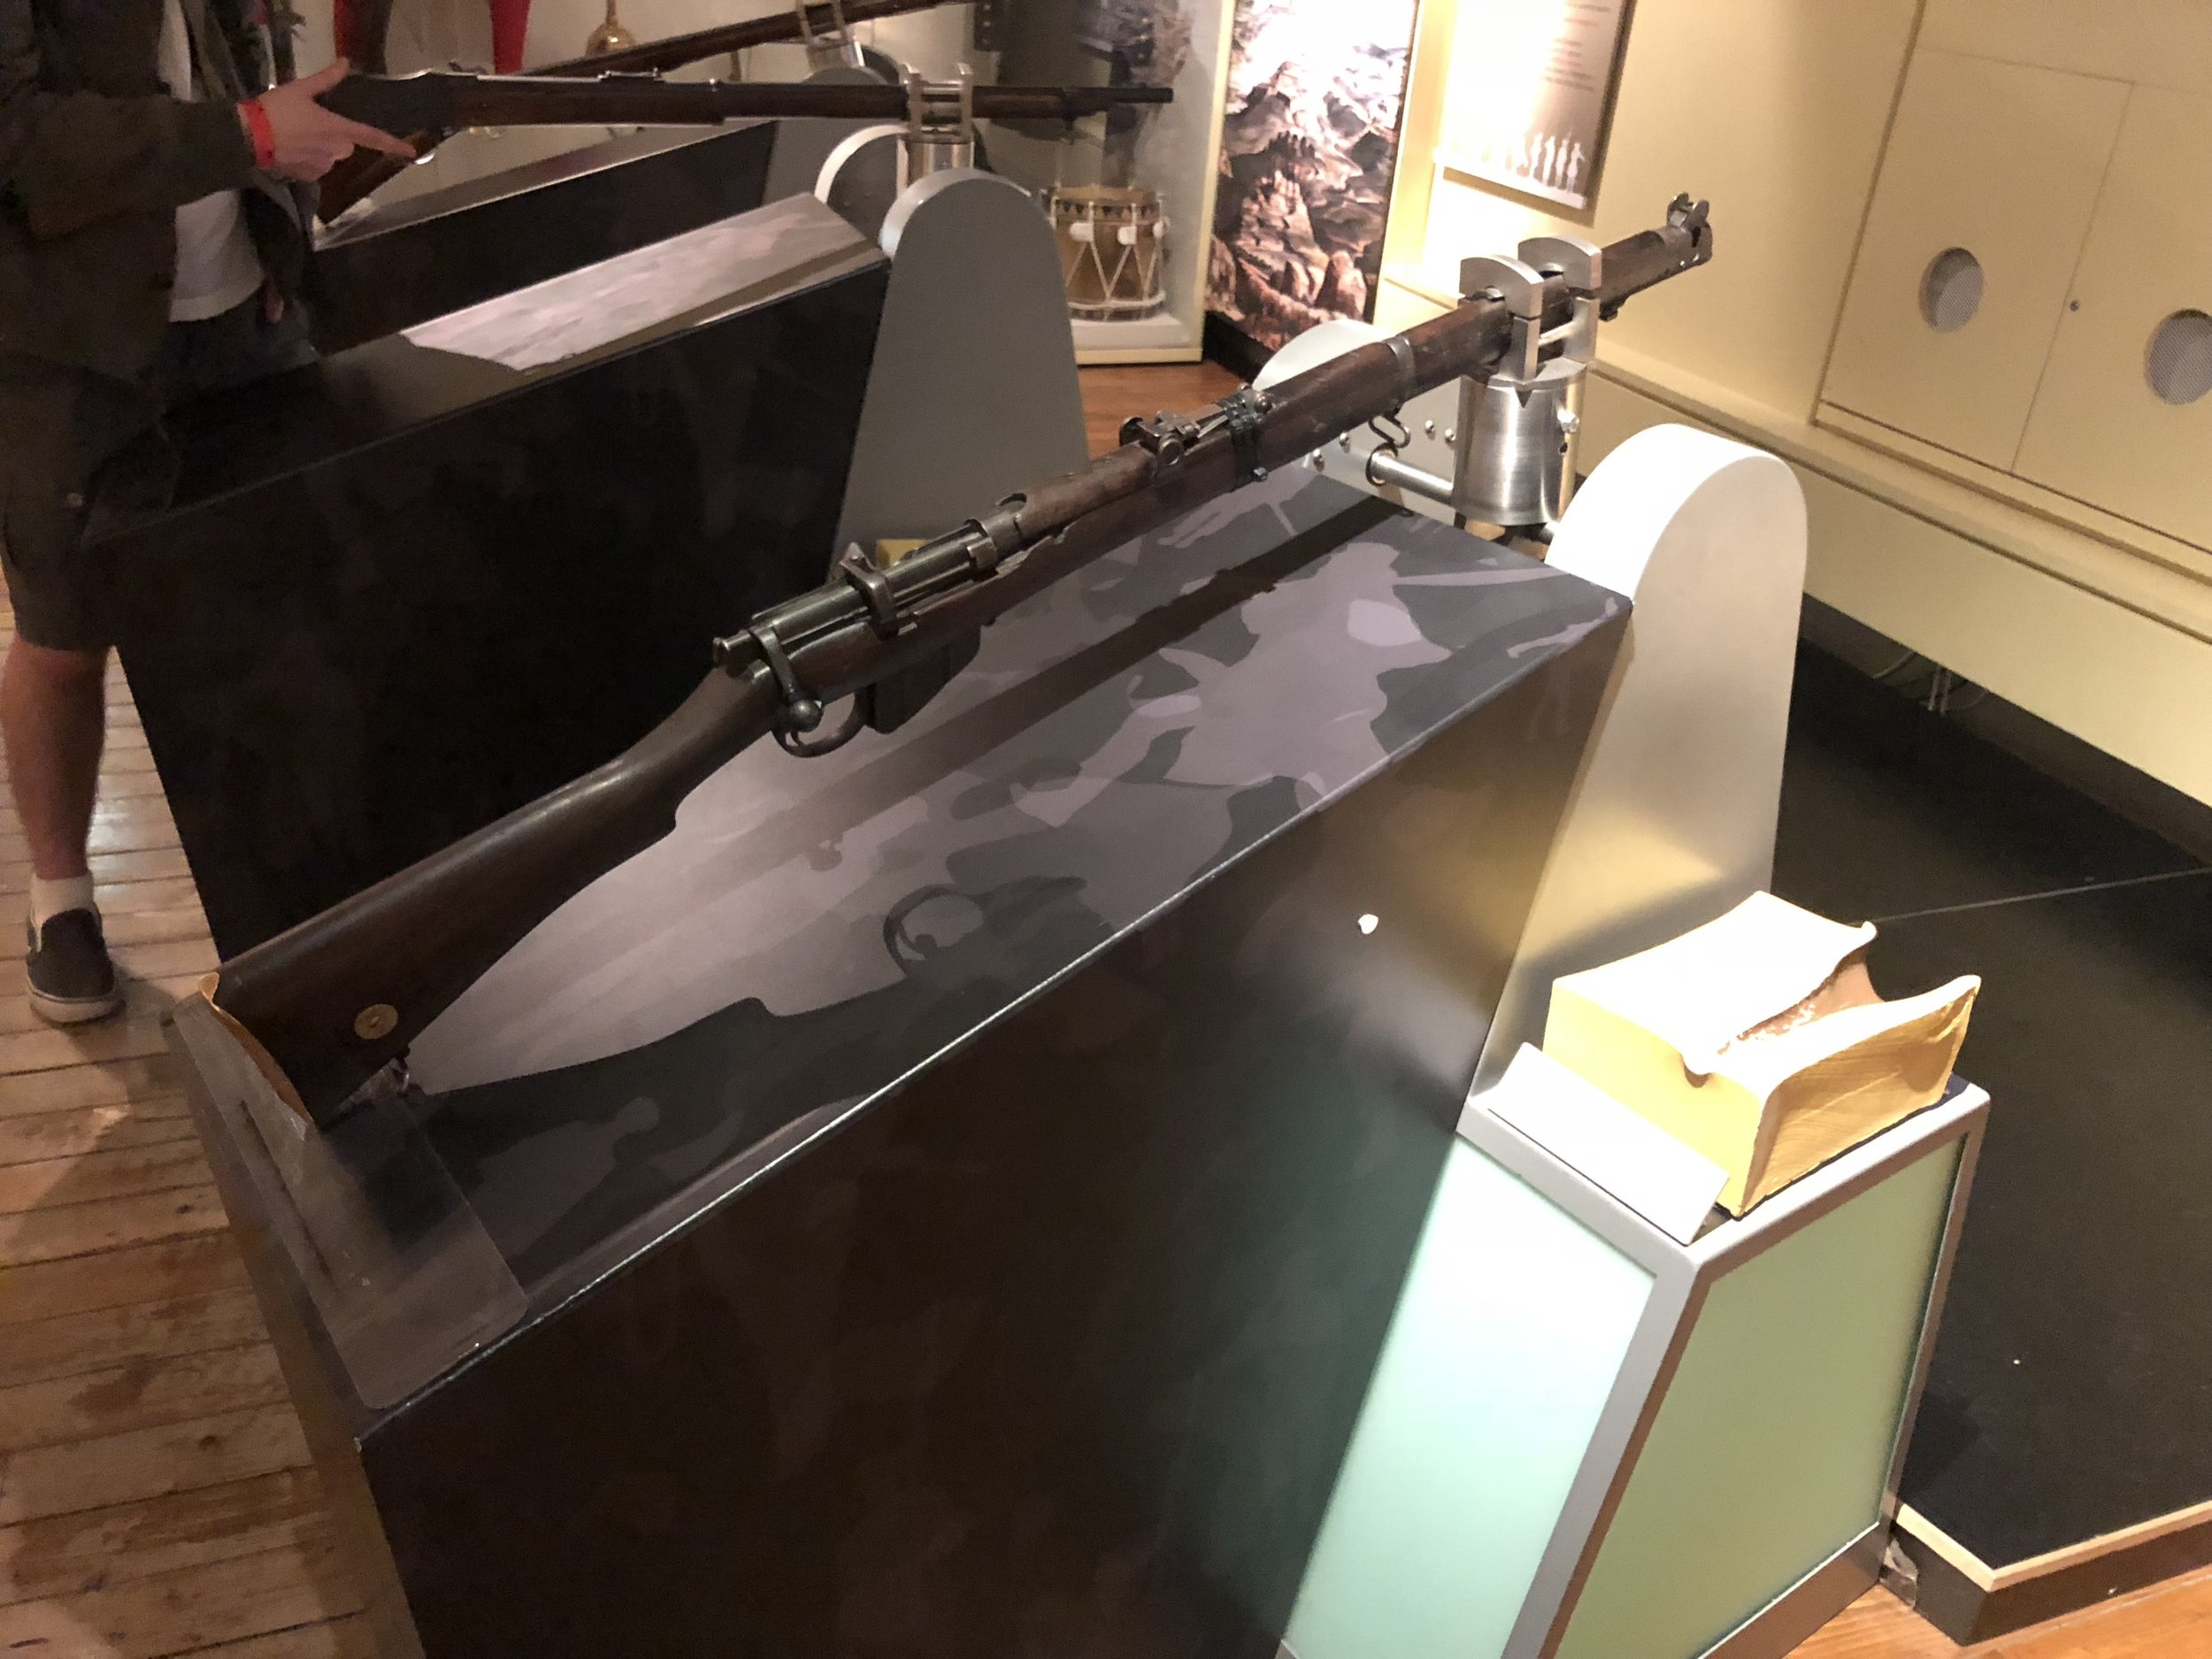 One of my favorite parts of the museum was the interactive display of old guns. After you picked one up, the screen displayed the proper way they were used and handled. Next to the guns was a wooden block depicting the result of the bullet on contact with a human.